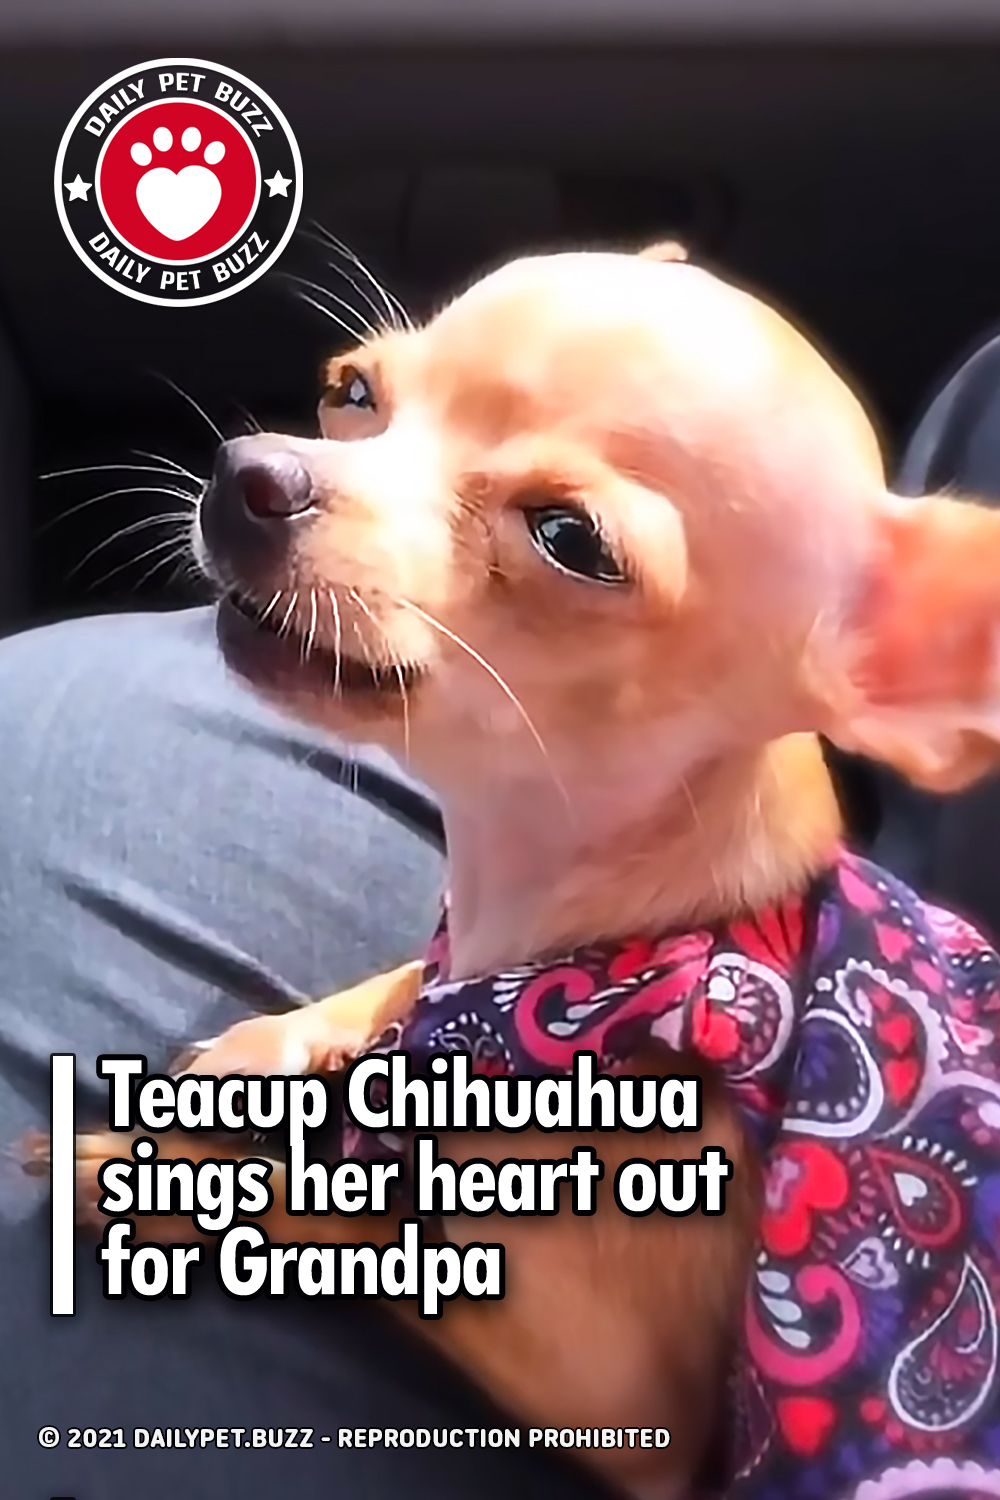 Teacup Chihuahua sings her heart out for Grandpa